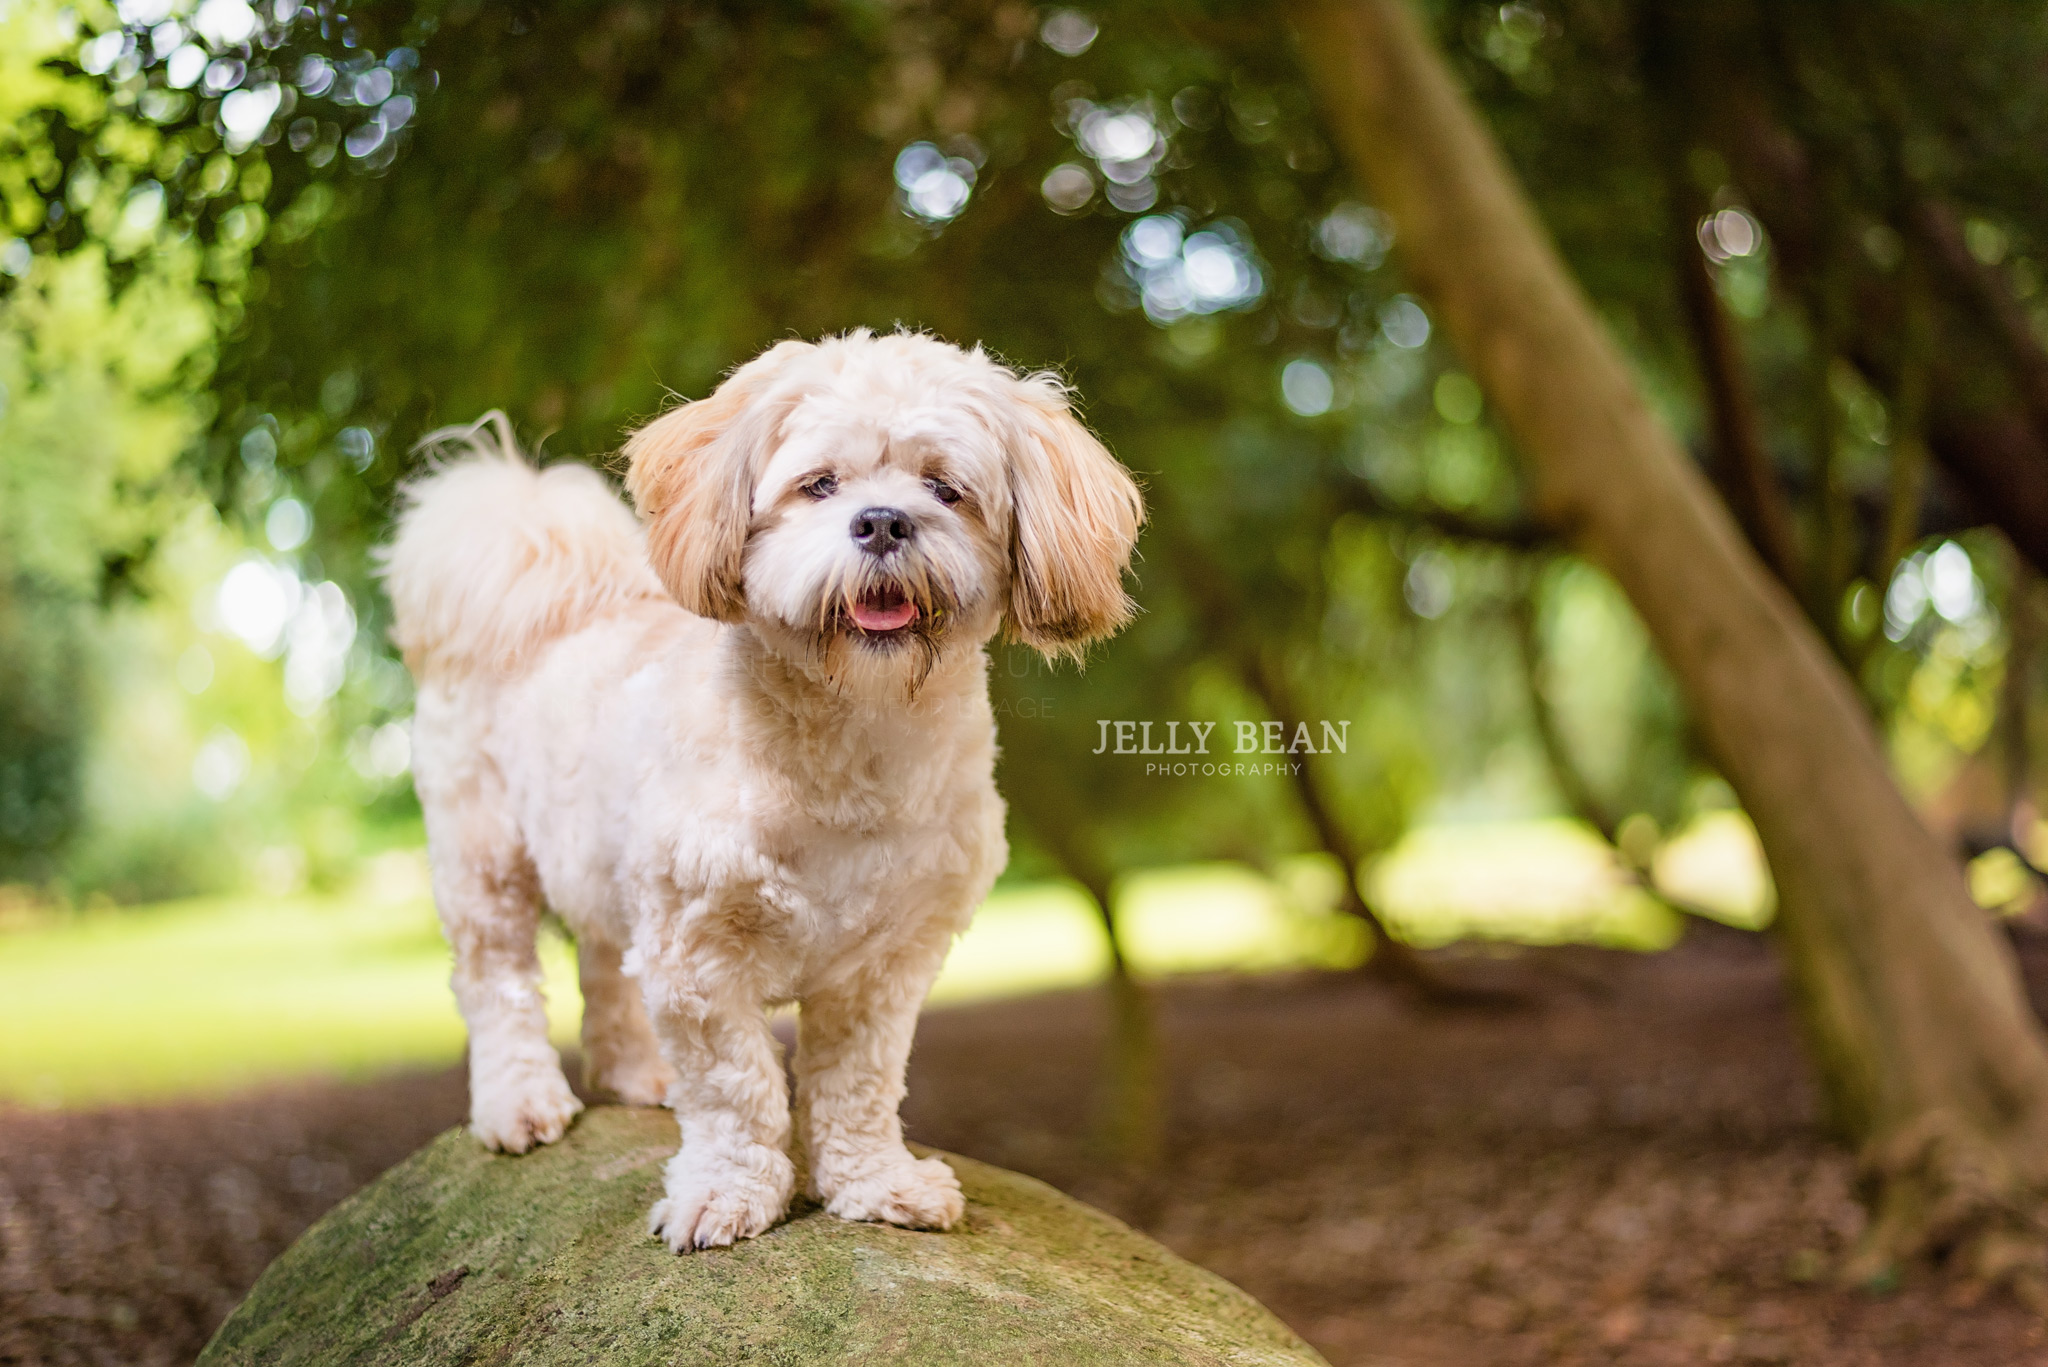 Shih Tzu puppy at delapre abbey